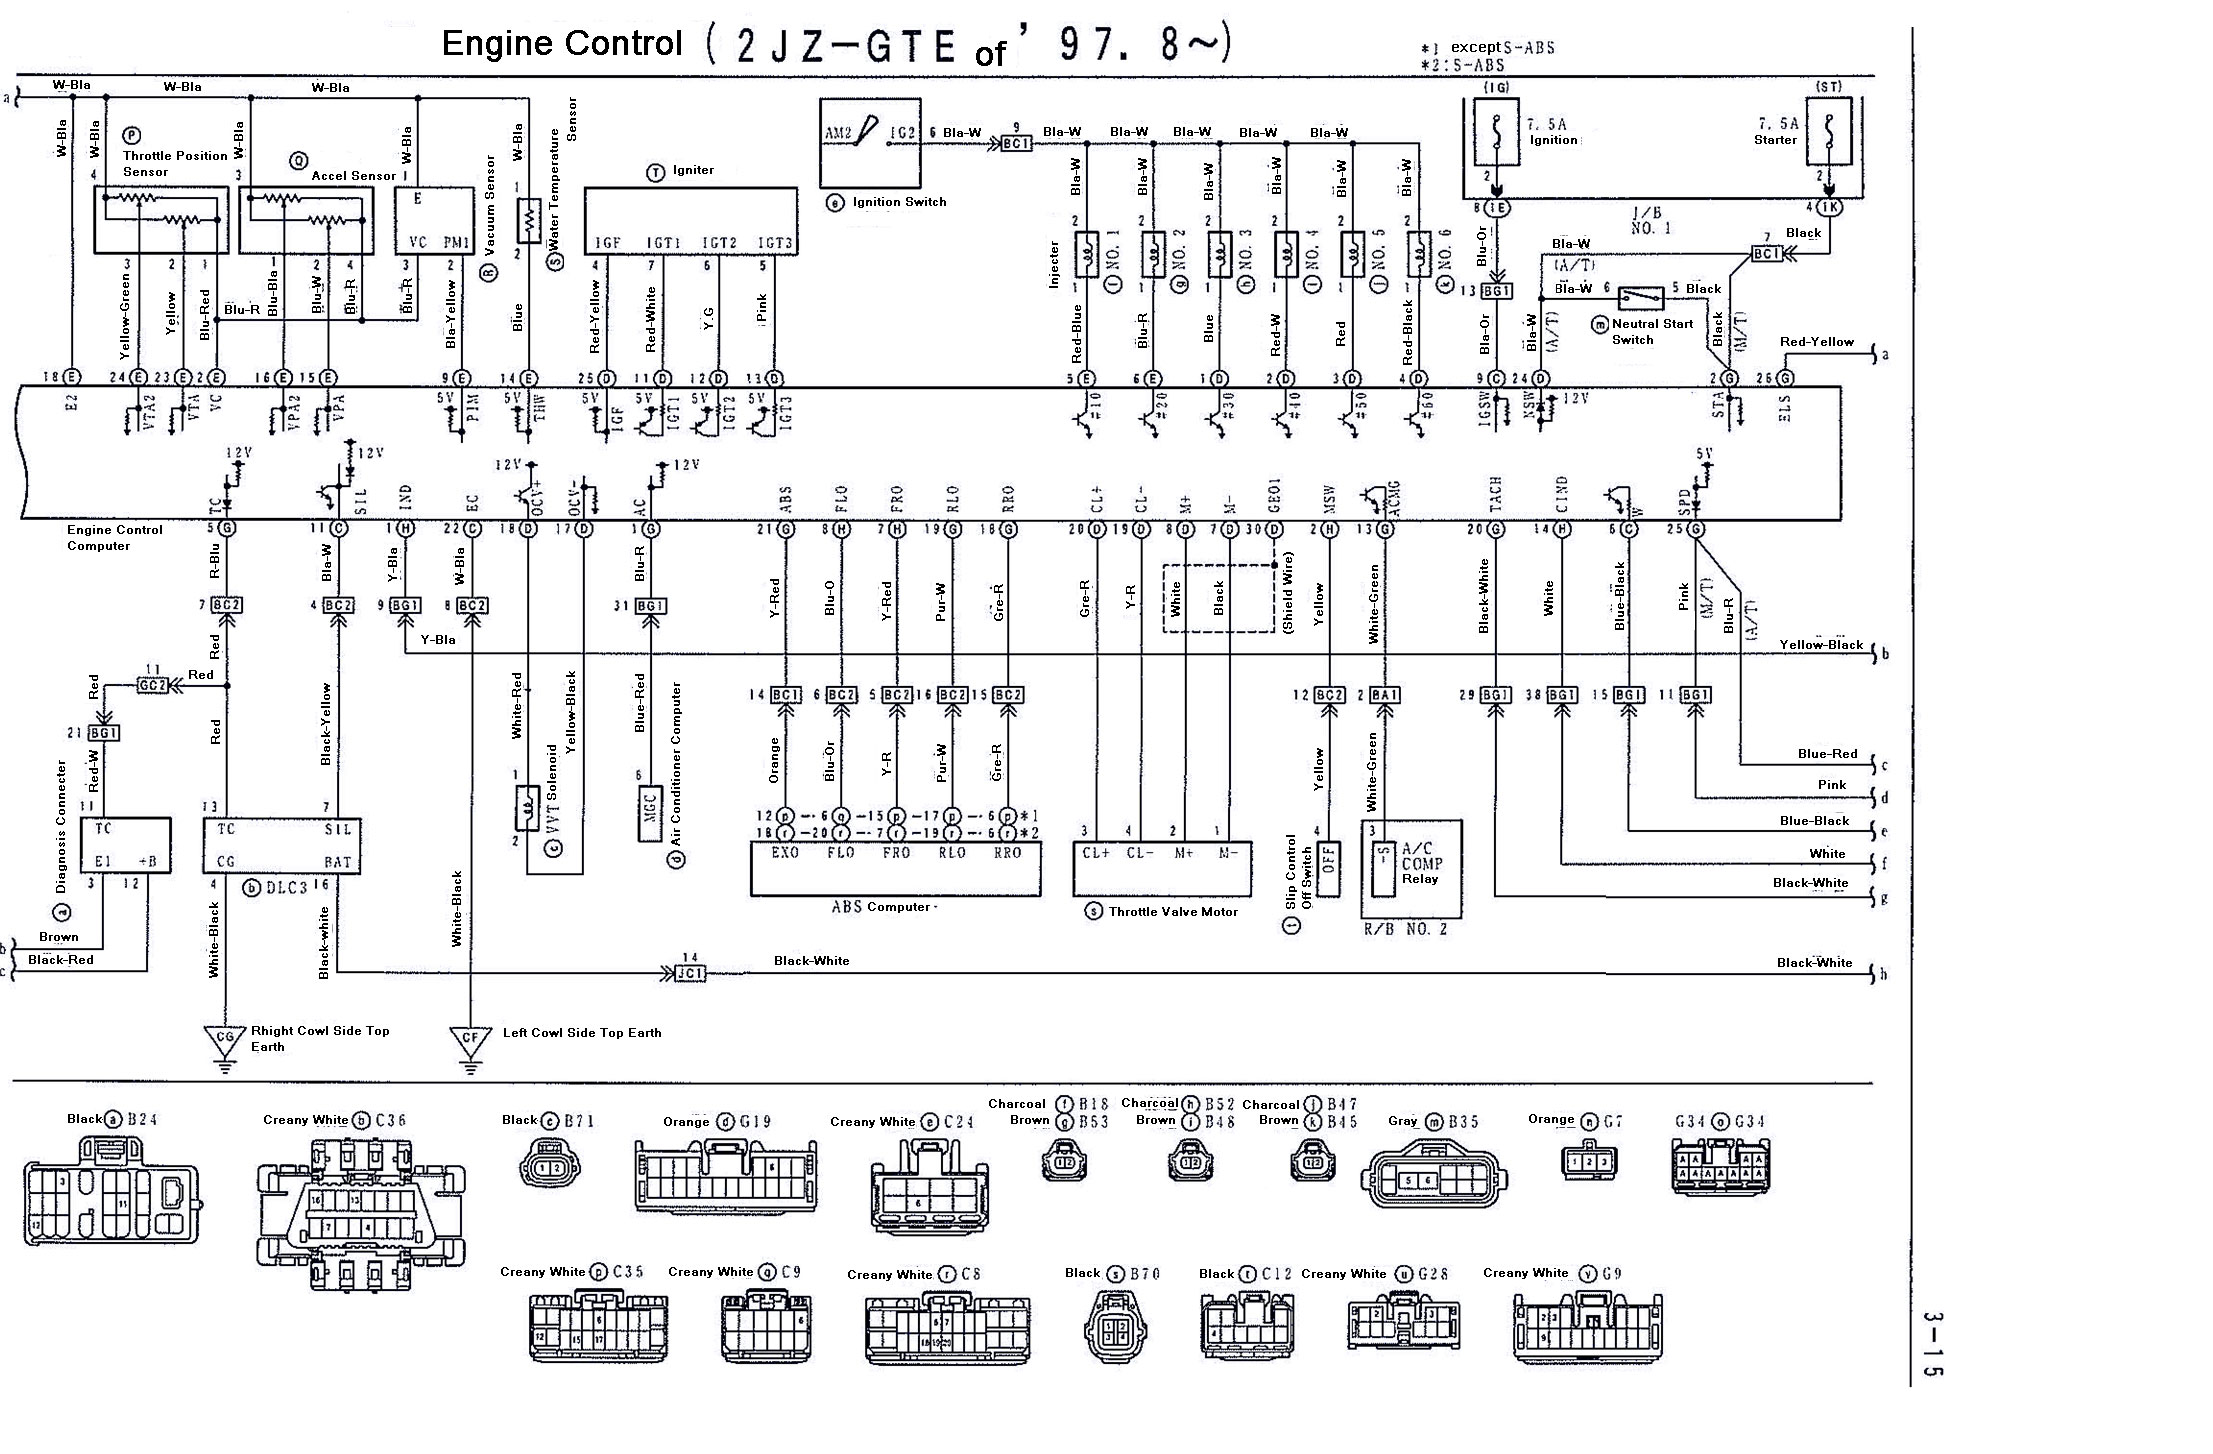 final3.15 supra 2jzgte vvti wiring diagrams (97 8 02) 2jzgarage mk3 supra wiring diagram at suagrazia.org